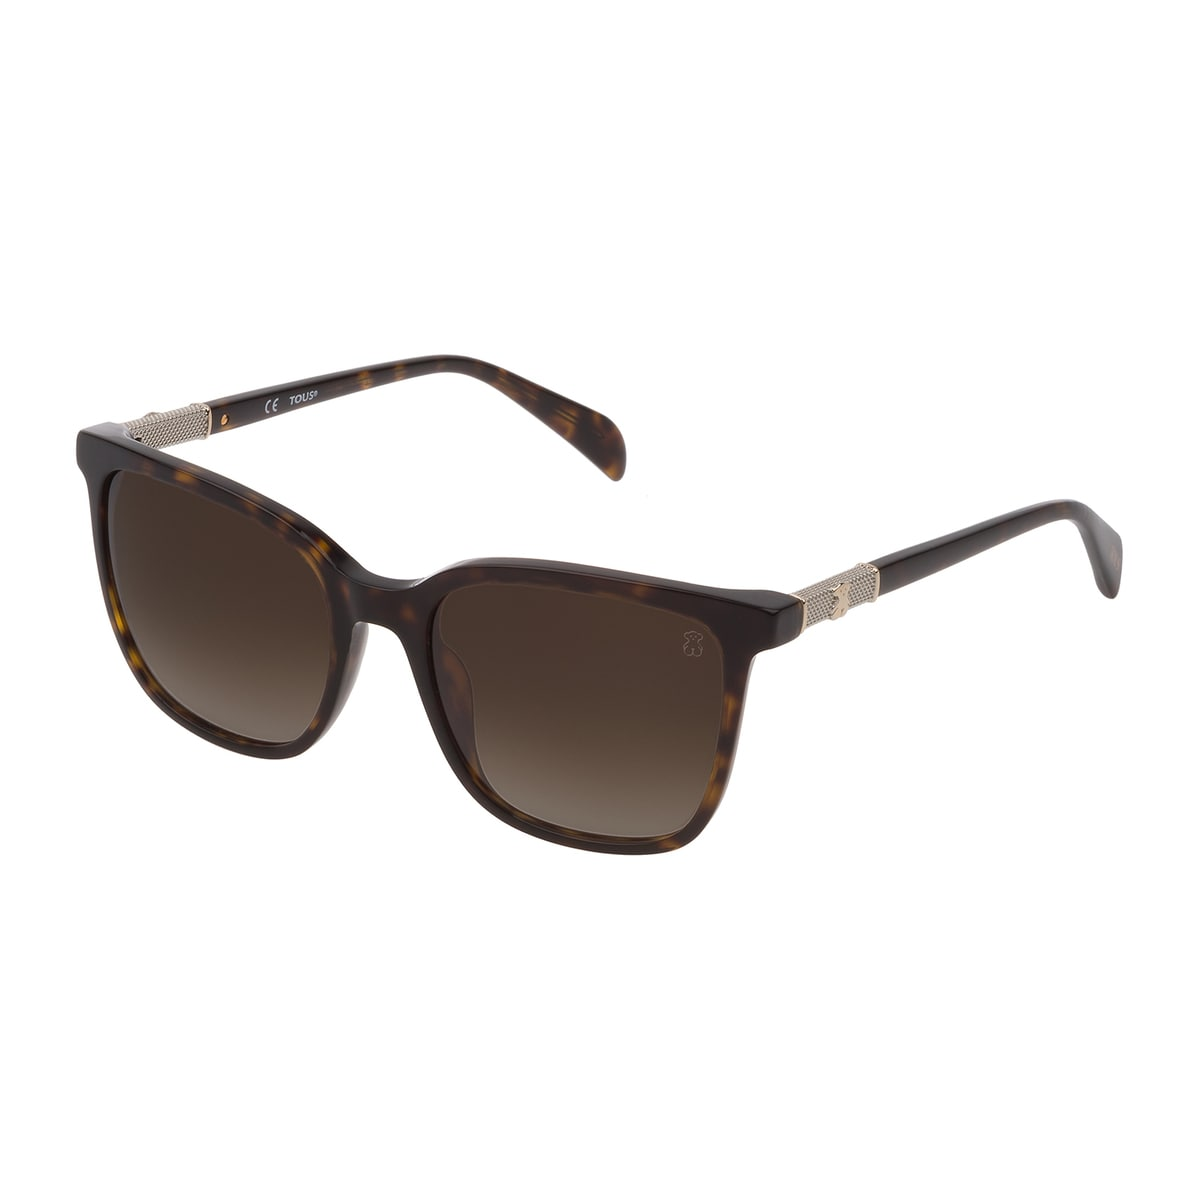 Brown Acetate Mesh Sunglasses